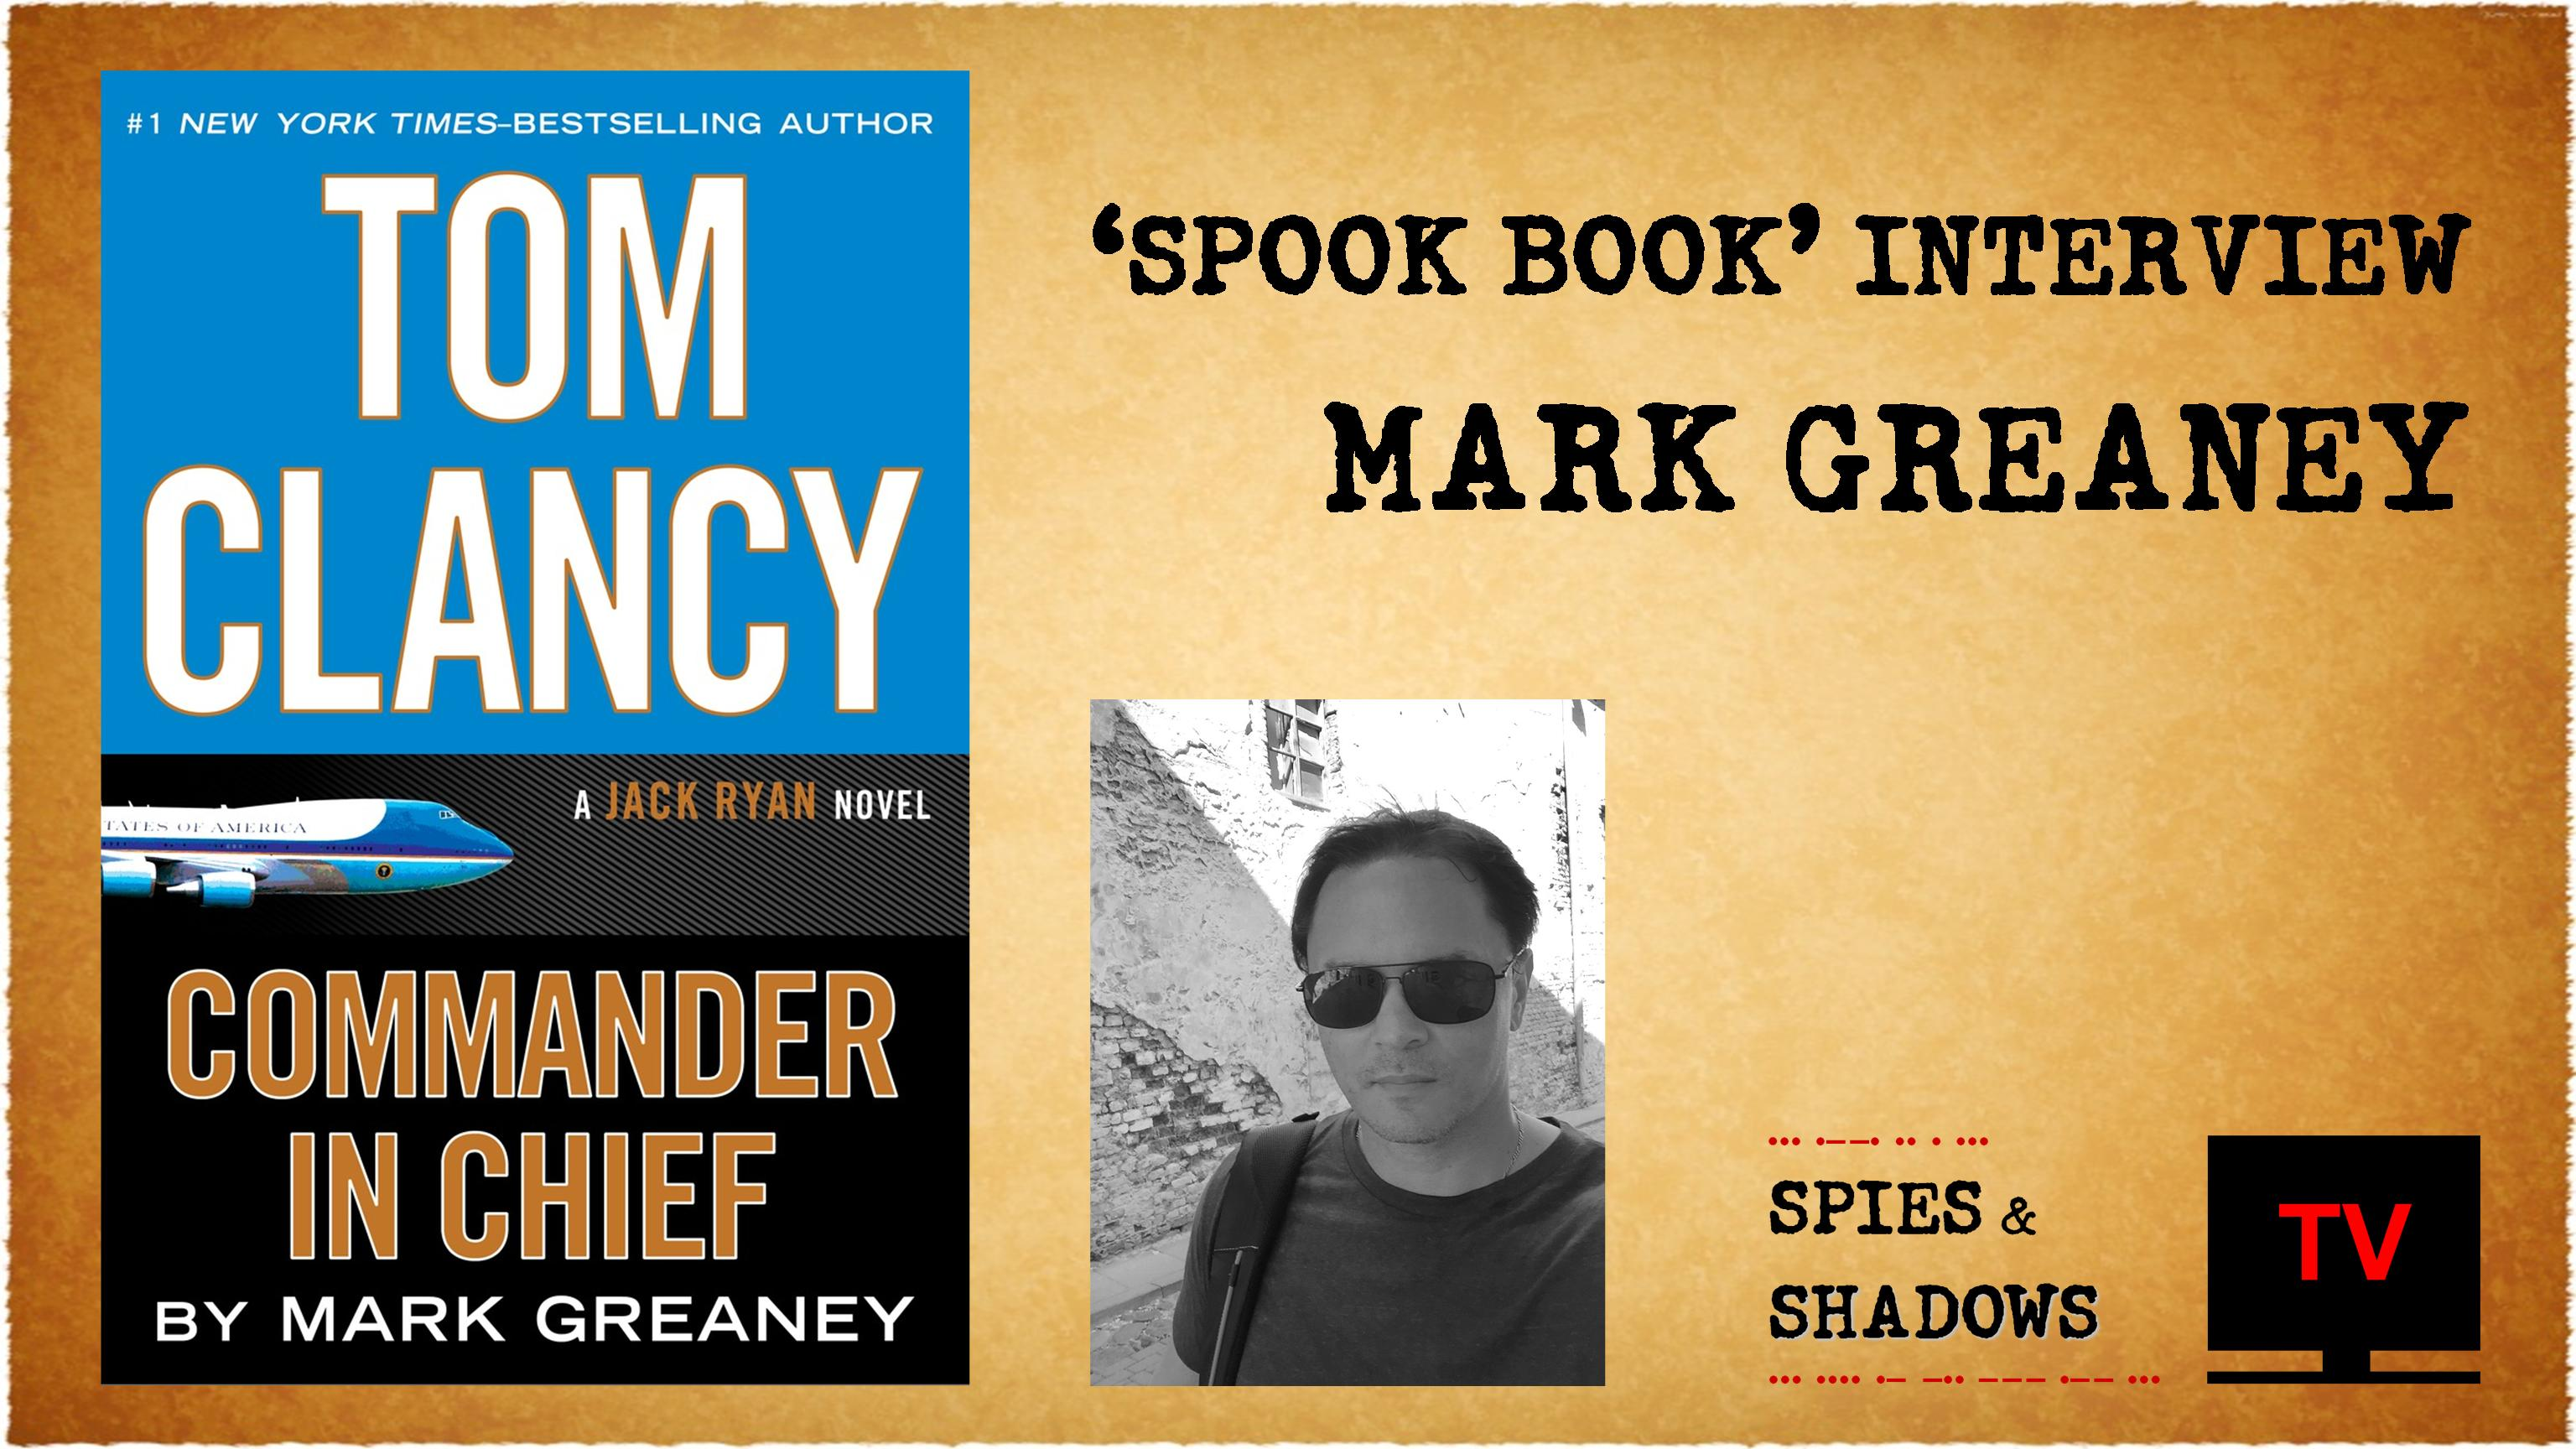 Spies & Shadows TV, Mark Greaney Interview, Commander-in-Chief, Tom Clancy